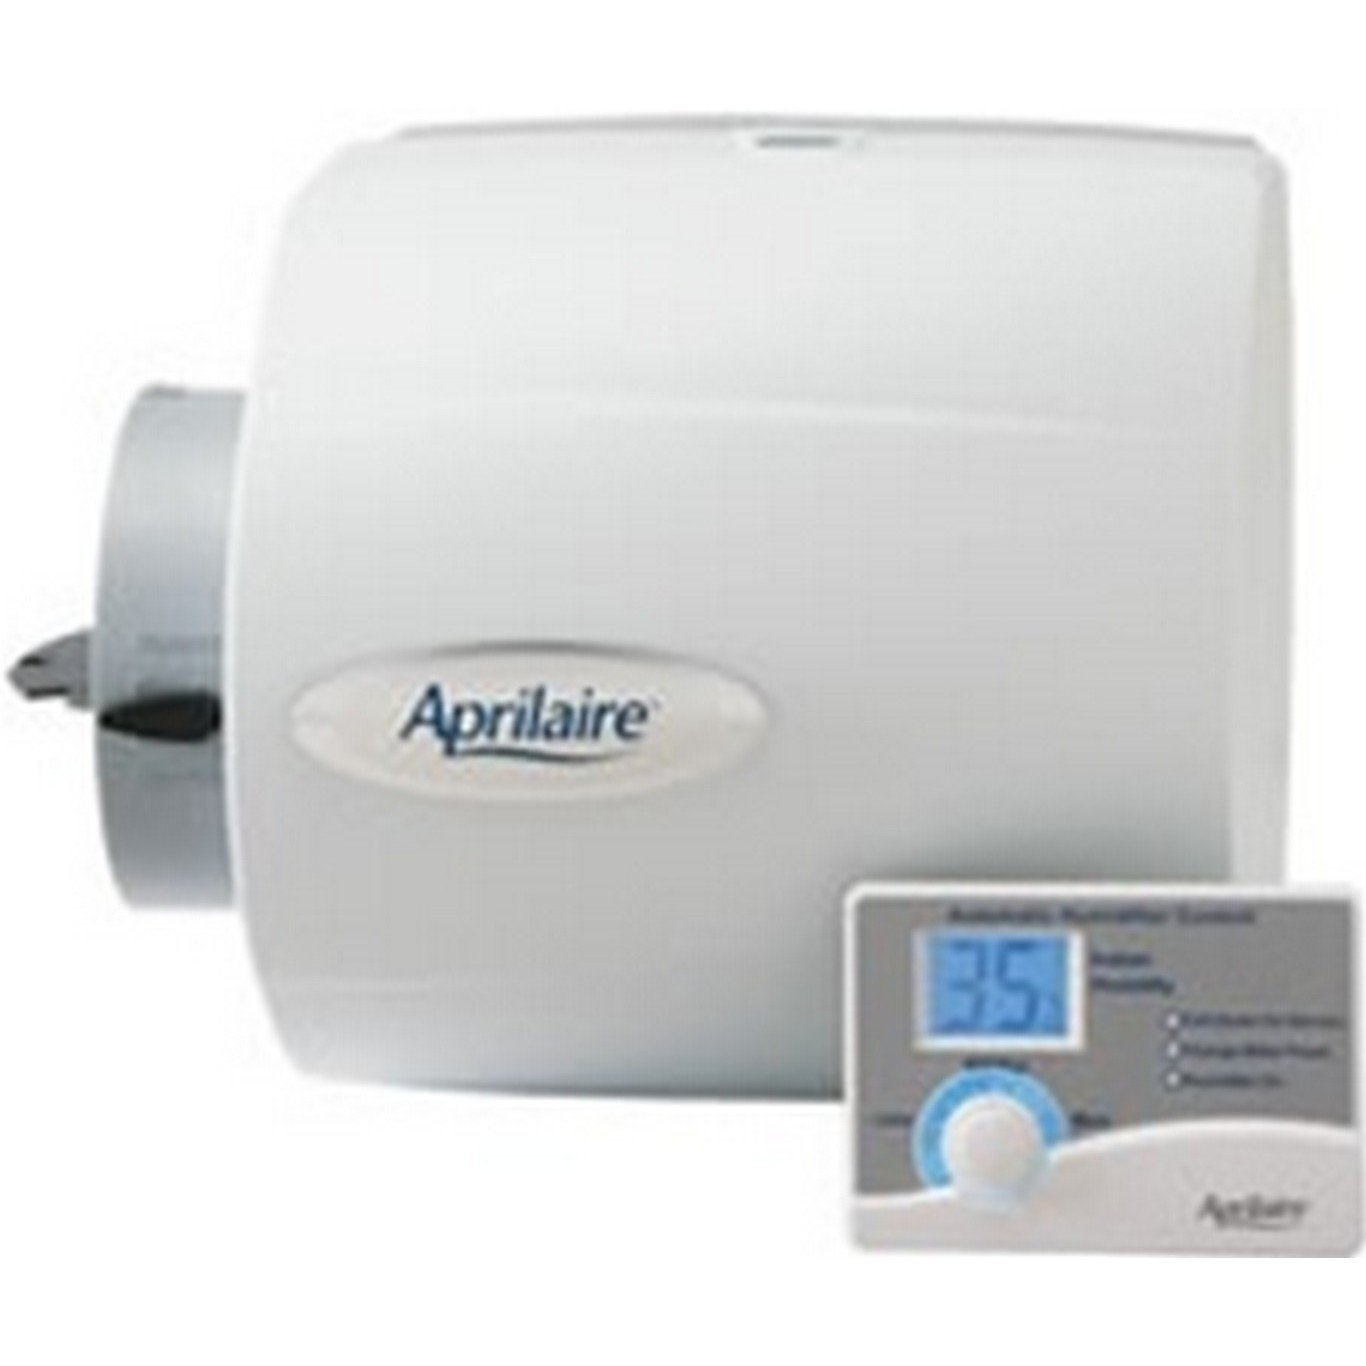 Portable room humidifiers vs Console humidifiers vs whole house flow  #396692